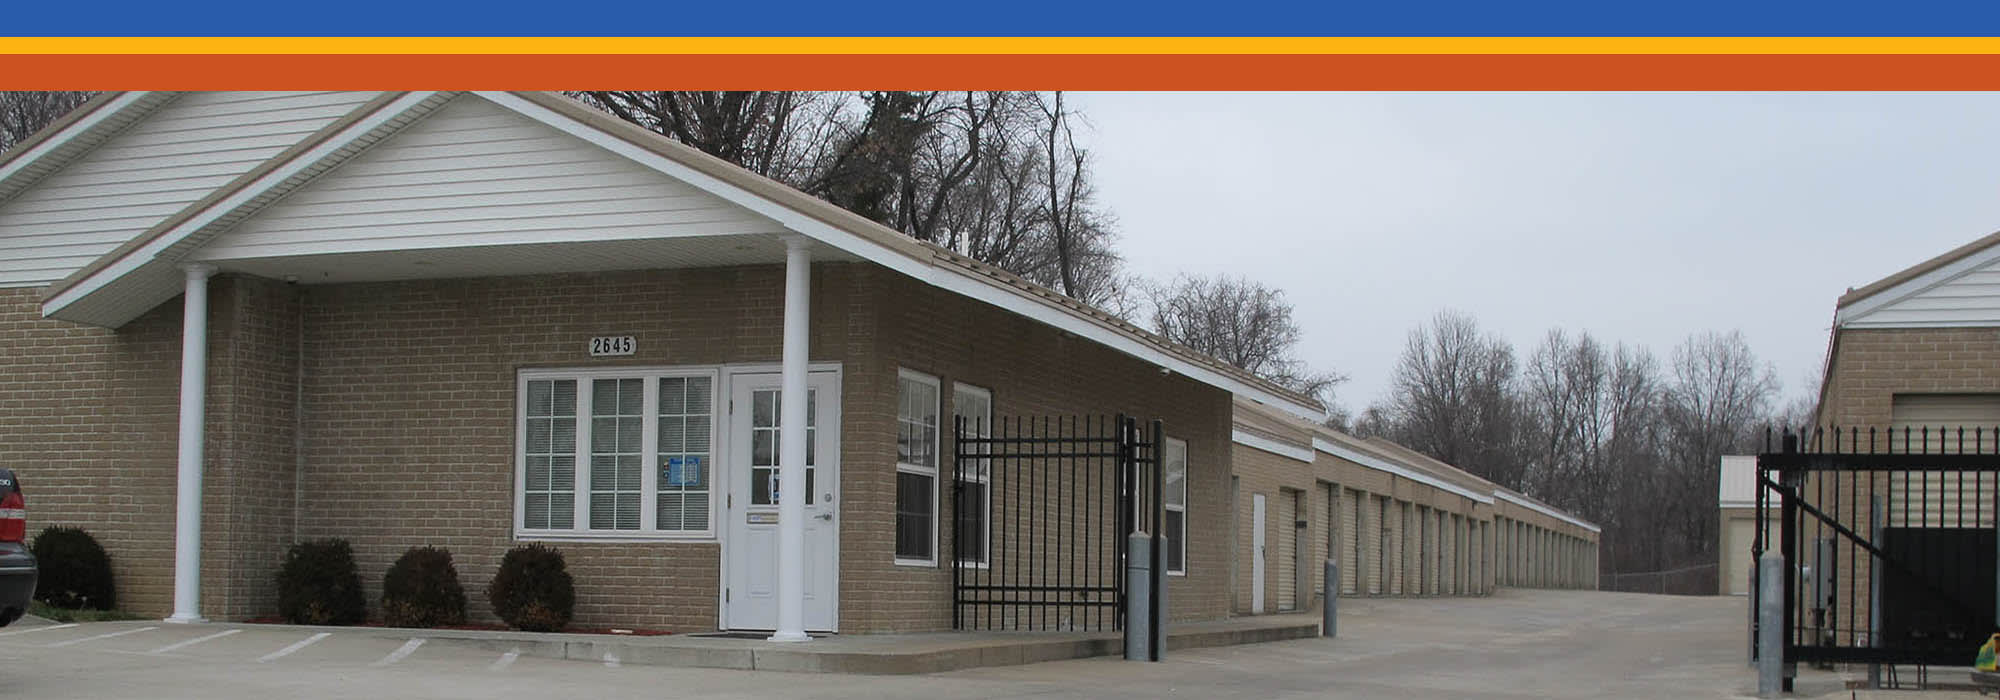 Self storage in Florissant MO